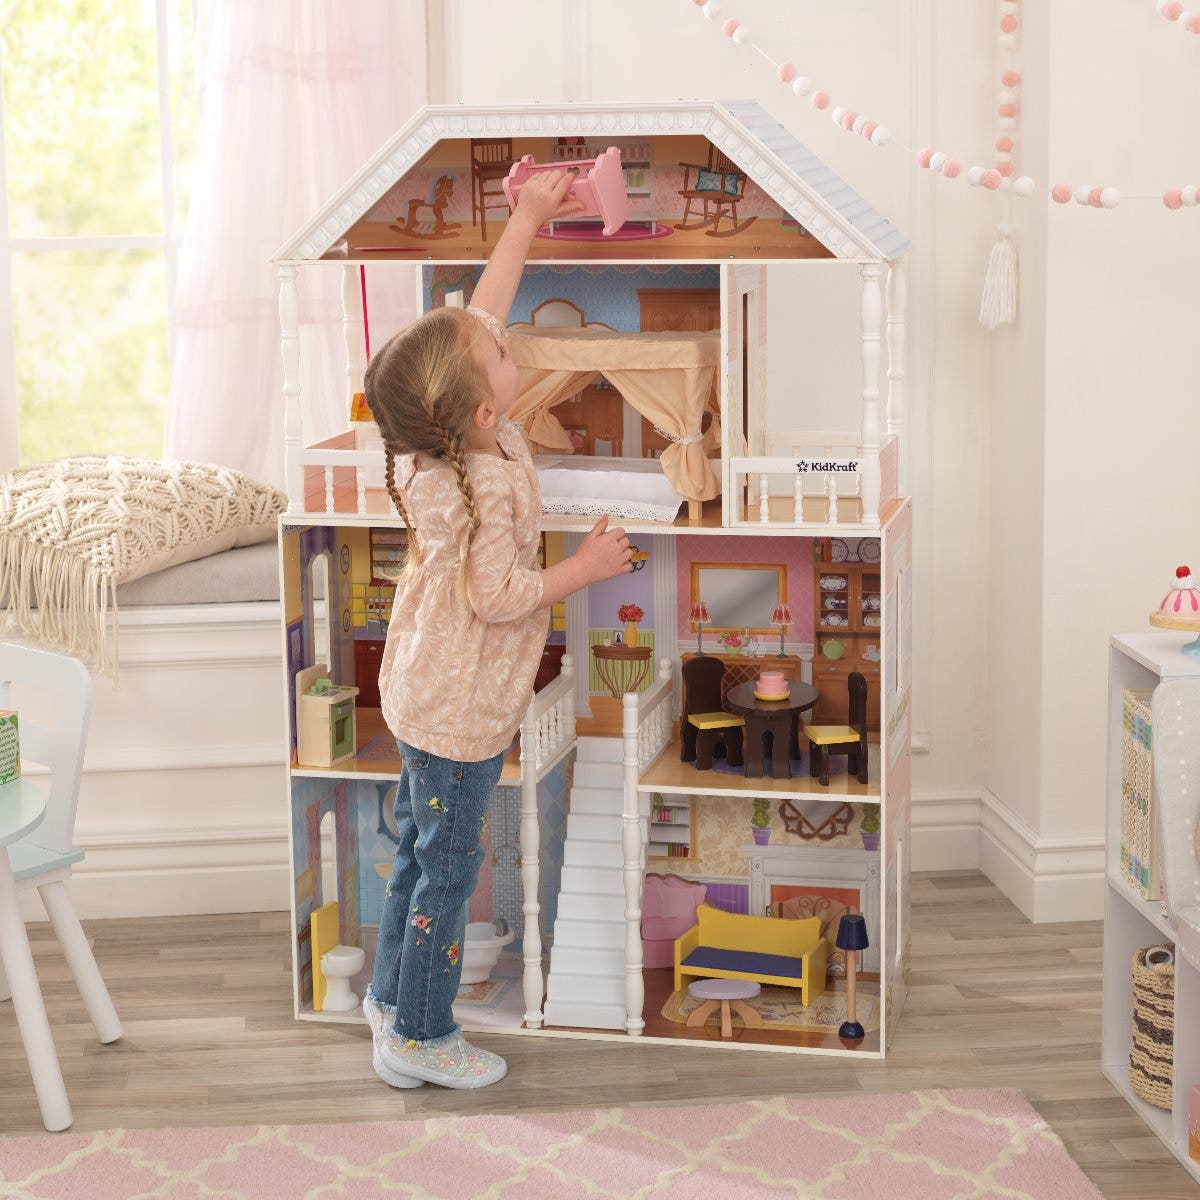 This spacious dollhouse is a child's dream home offering 4 floors, 6 rooms, 2 balconies and a working porch swing. This play set stands at 124.46cm tall and is made from sturdy wood